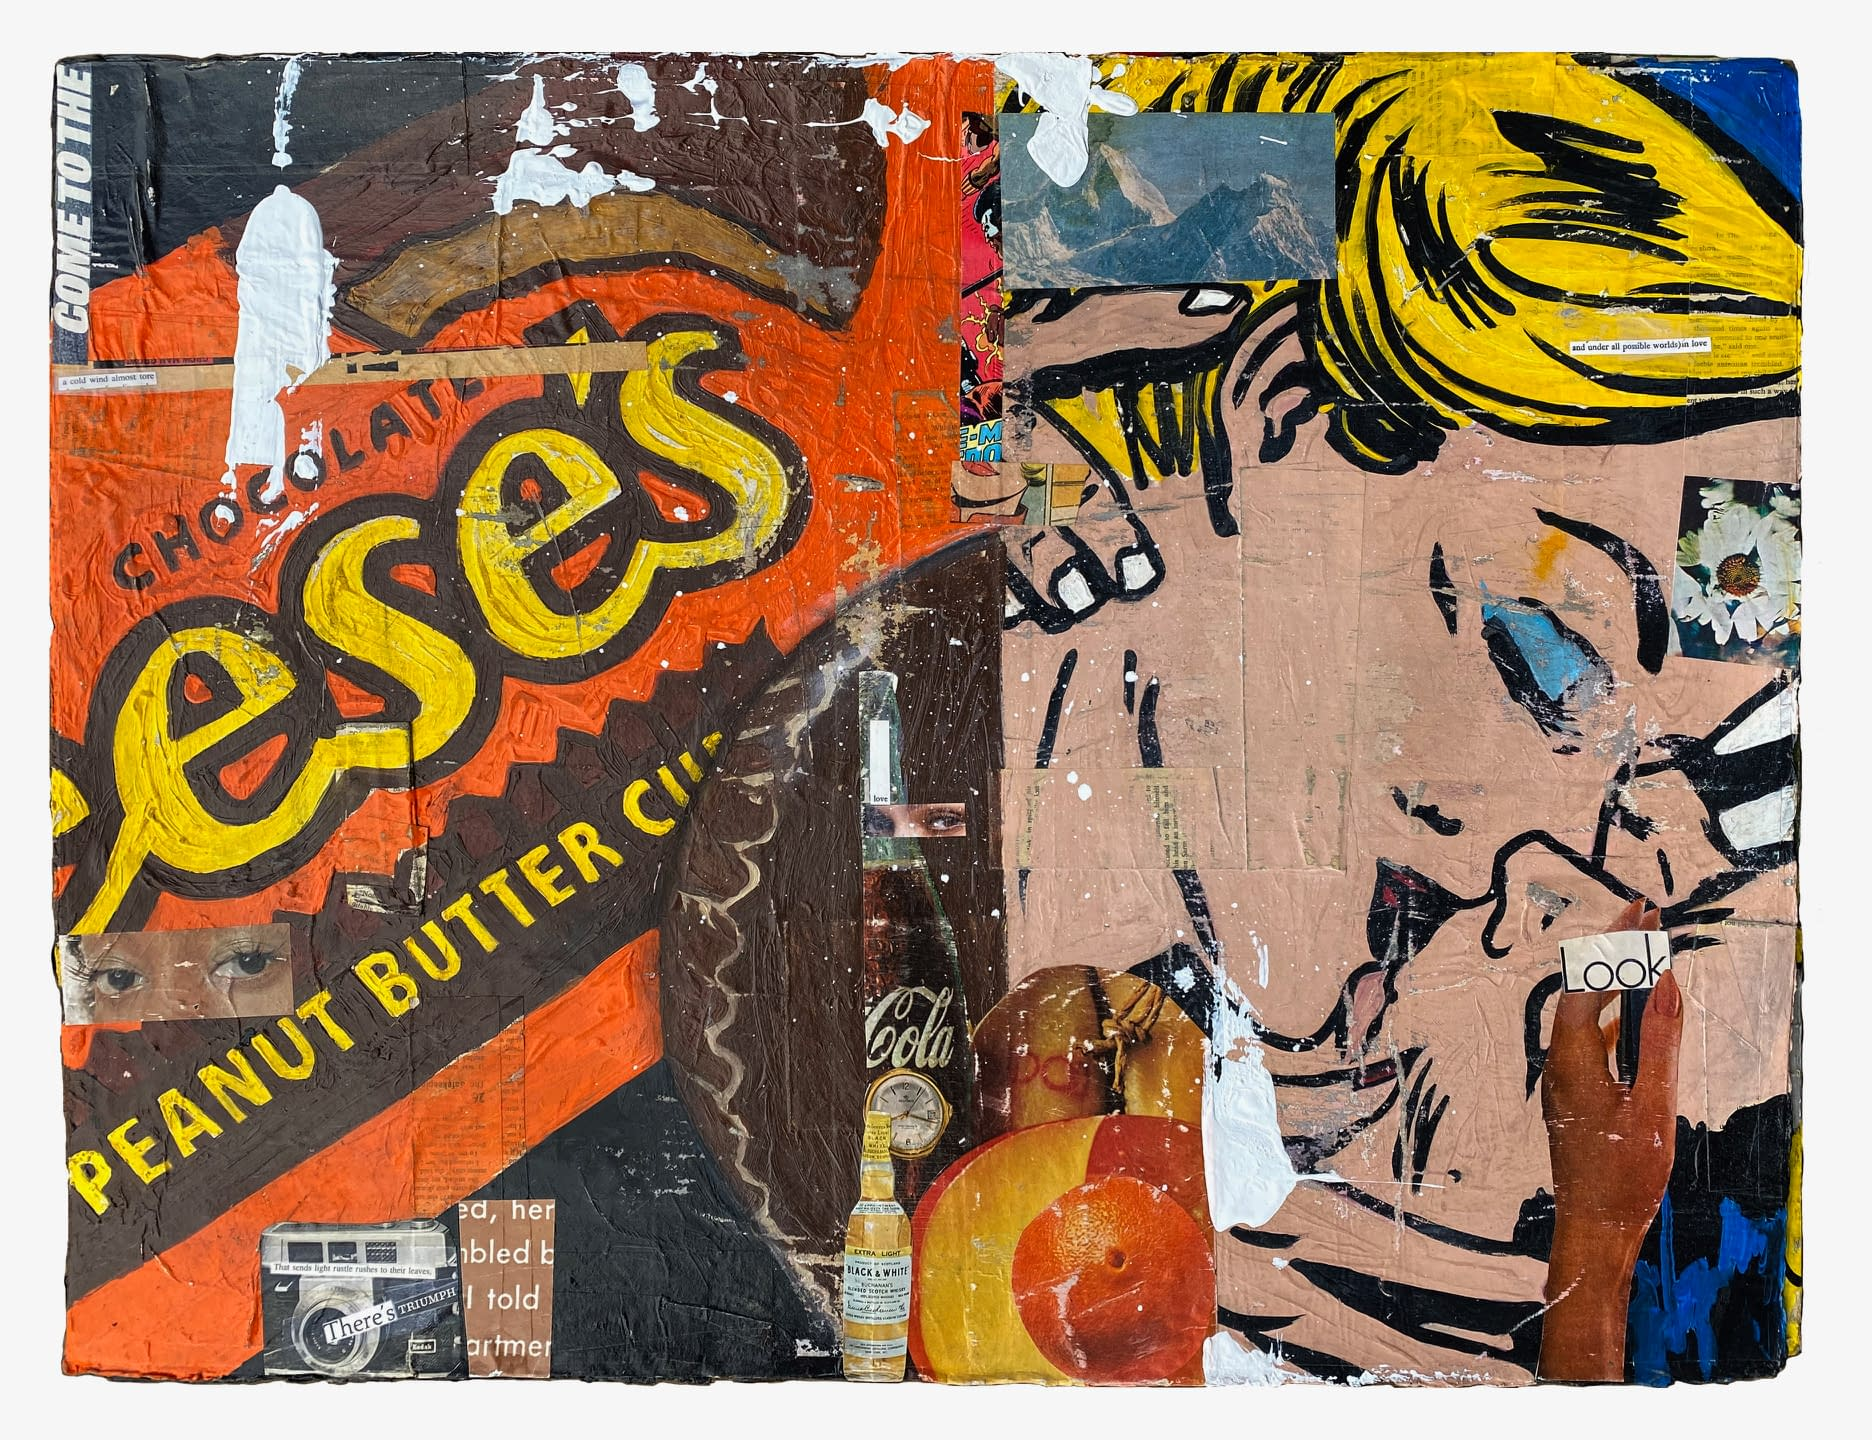 Reeses_Greg_Miller_Acrylic_Collage_on_Paper_23_x_30